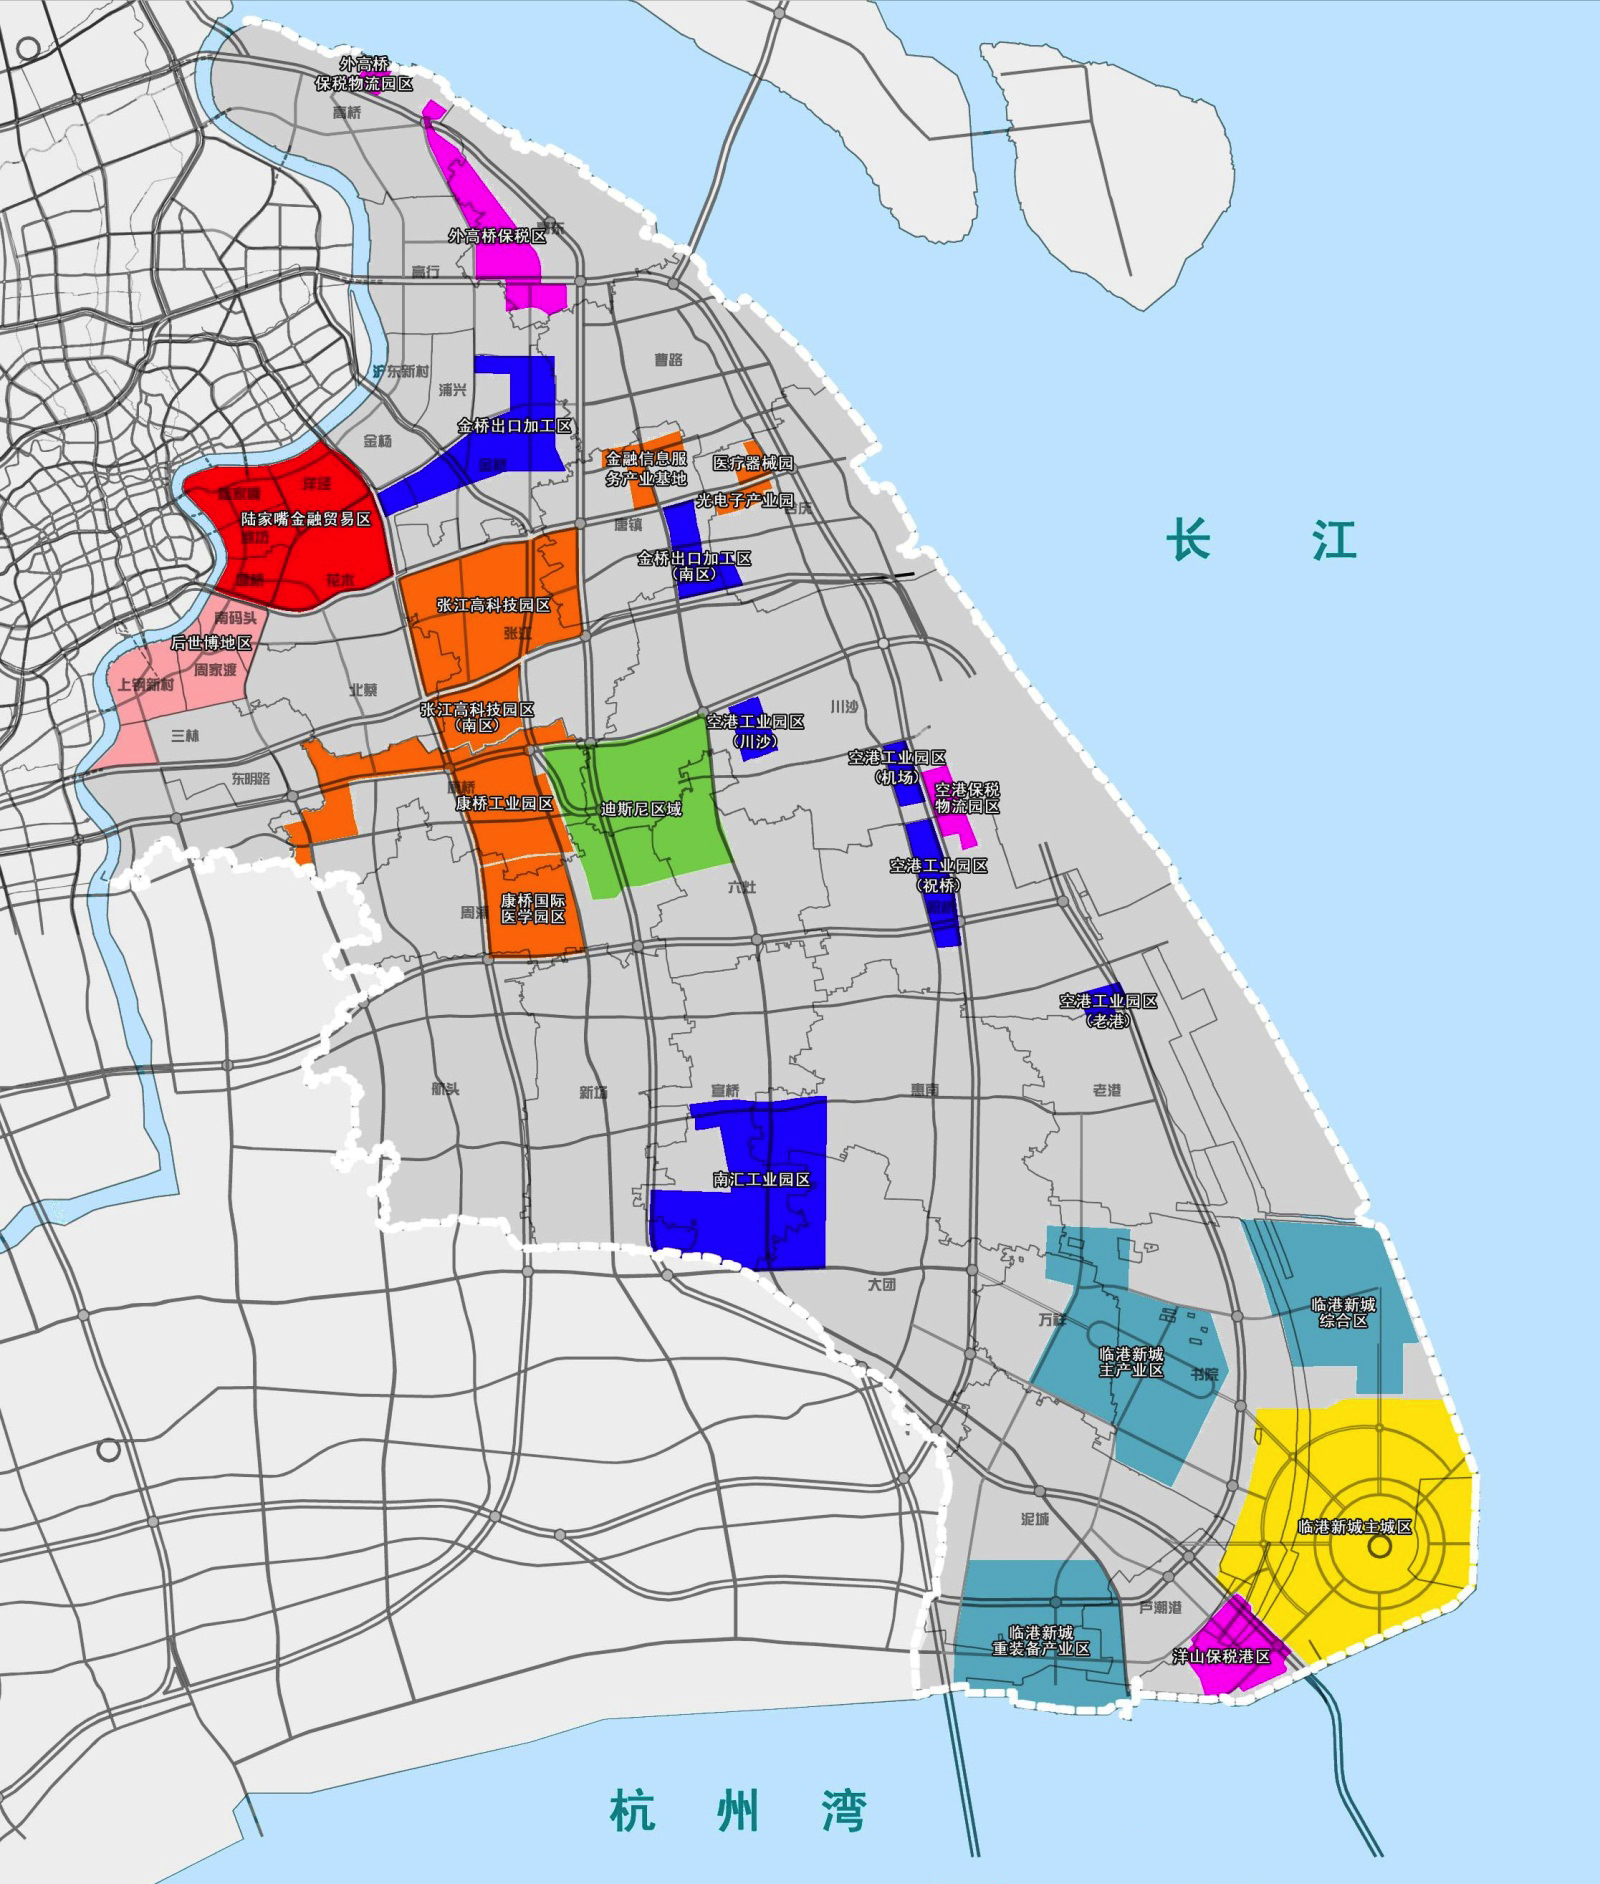 Pudong Shanghai Map File:Map of Shanghai Pudong New District.png   Wikimedia Commons